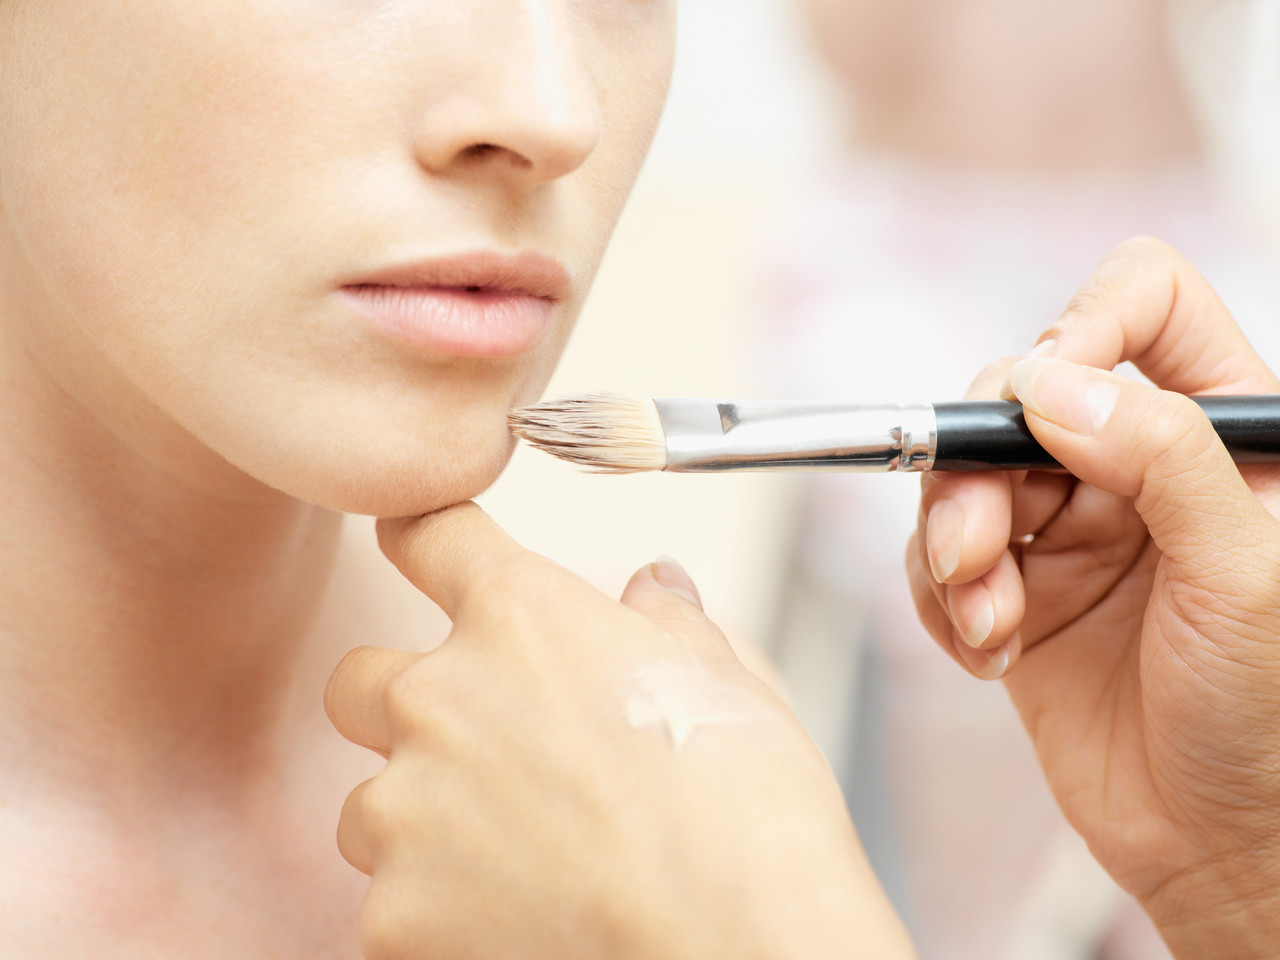 Five Tips on How to Use Makeup at Night